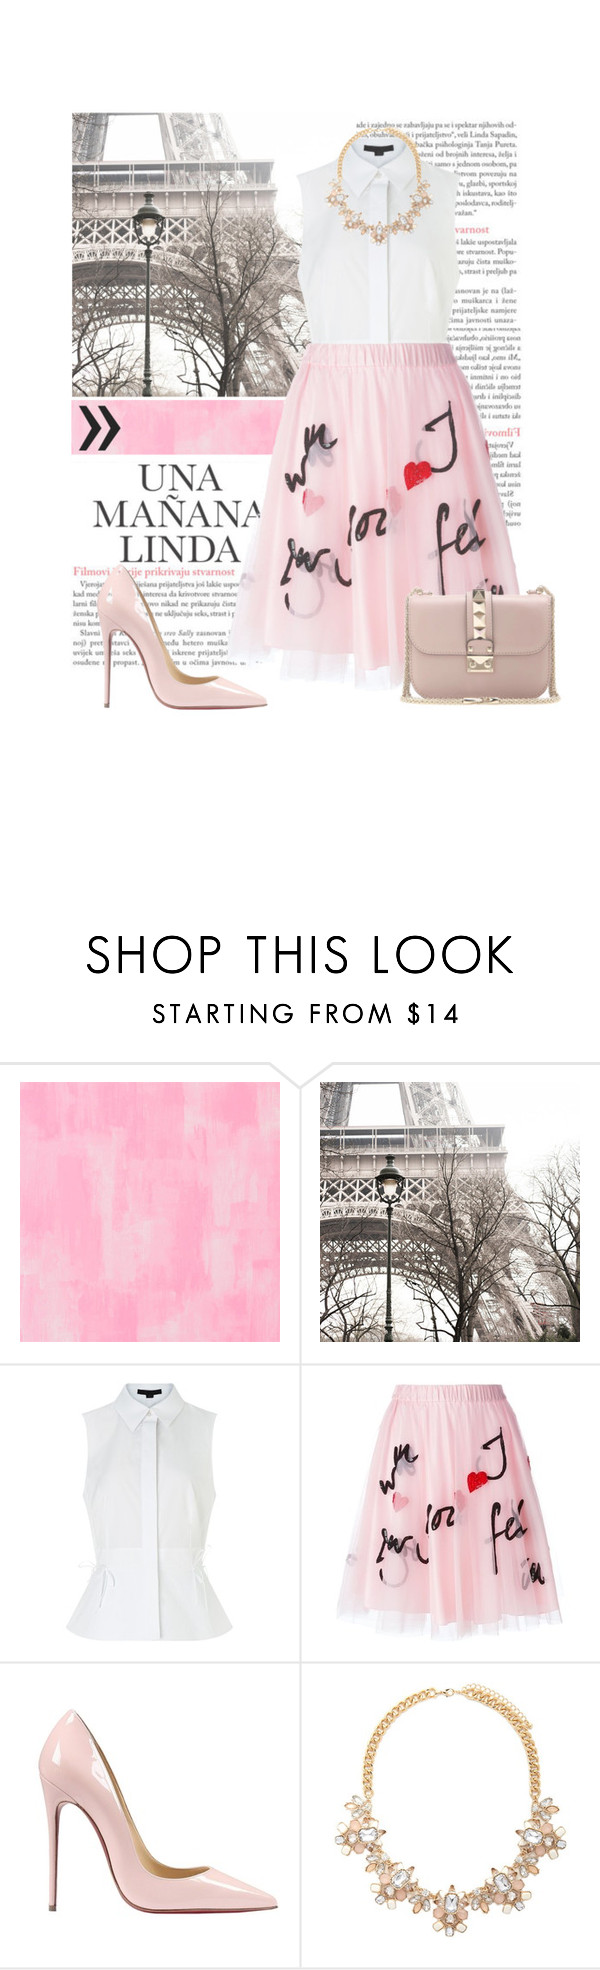 """●Una Mañana Linda●"" by nxtmoon ❤ liked on Polyvore featuring Designers Guild, Alexander Wang, P.A.R.O.S.H., Christian Louboutin, Forever 21, Valentino, women's clothing, women's fashion, women and female"